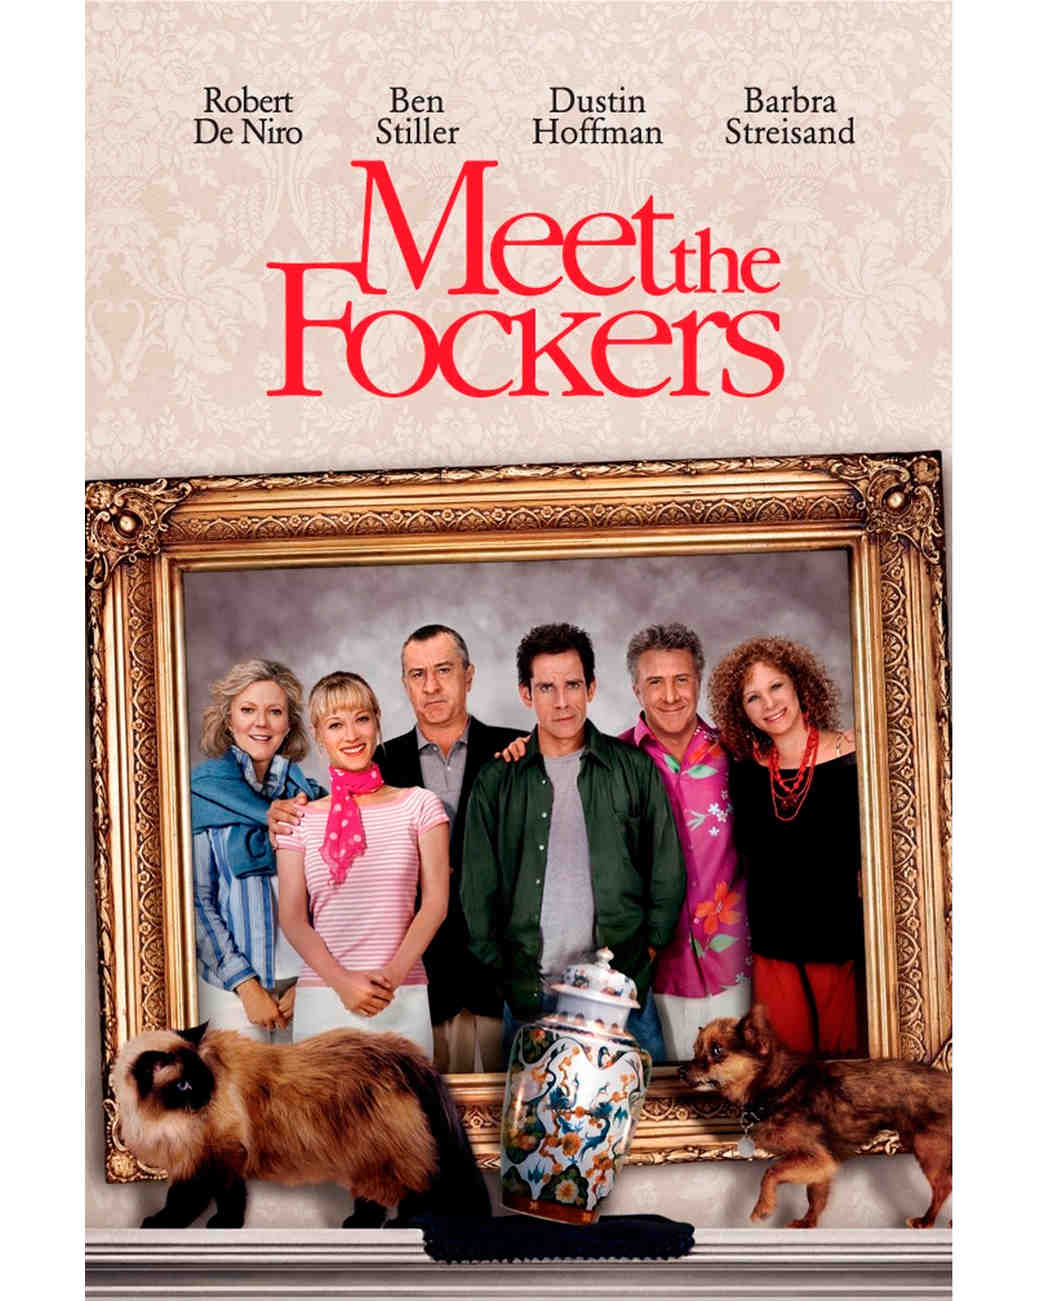 wedding-movies-meet-the-fockers-1115.jpg